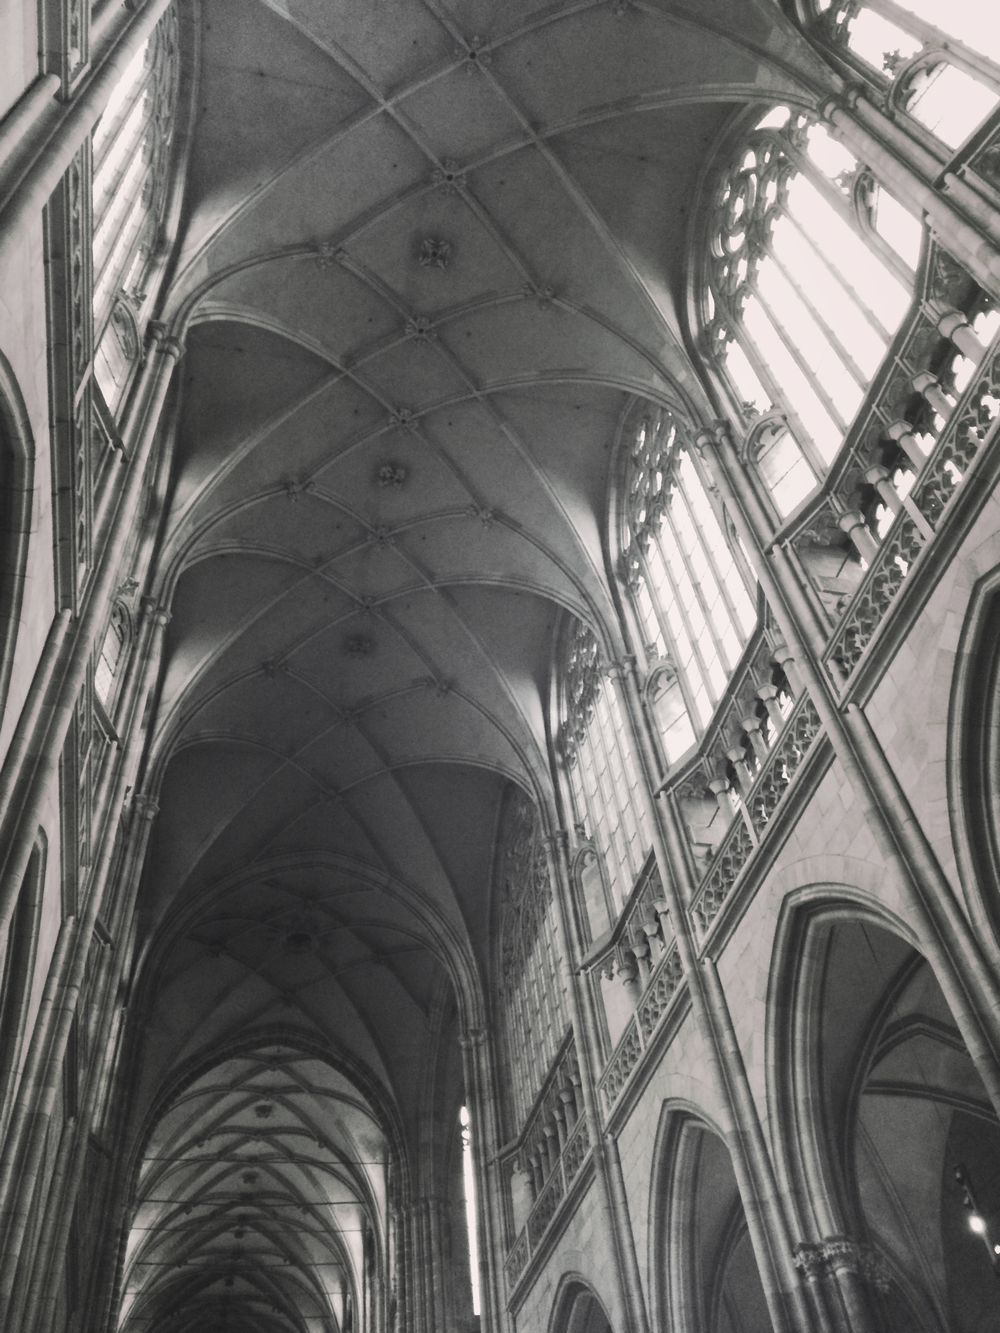 Inside the St. Vitus gothic cathedral. It was cool to see such good examples of such different architectural styles all in one city.